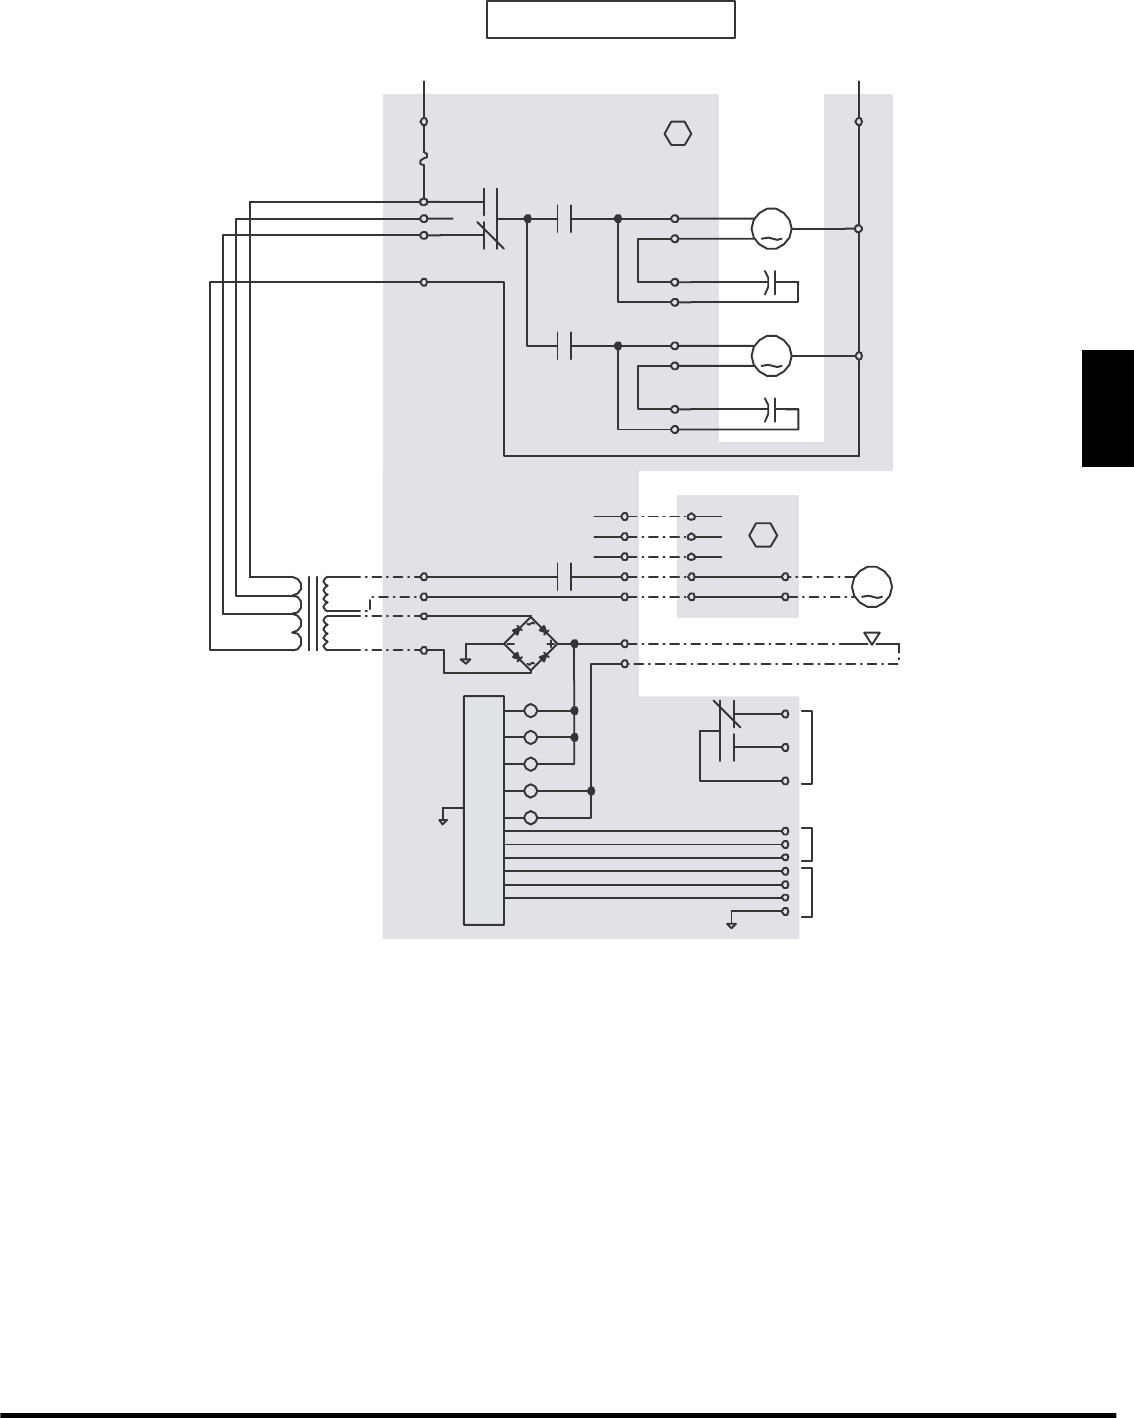 Bryant Ervbbsva1100 Logic Diagram Draw A 120v 60hz